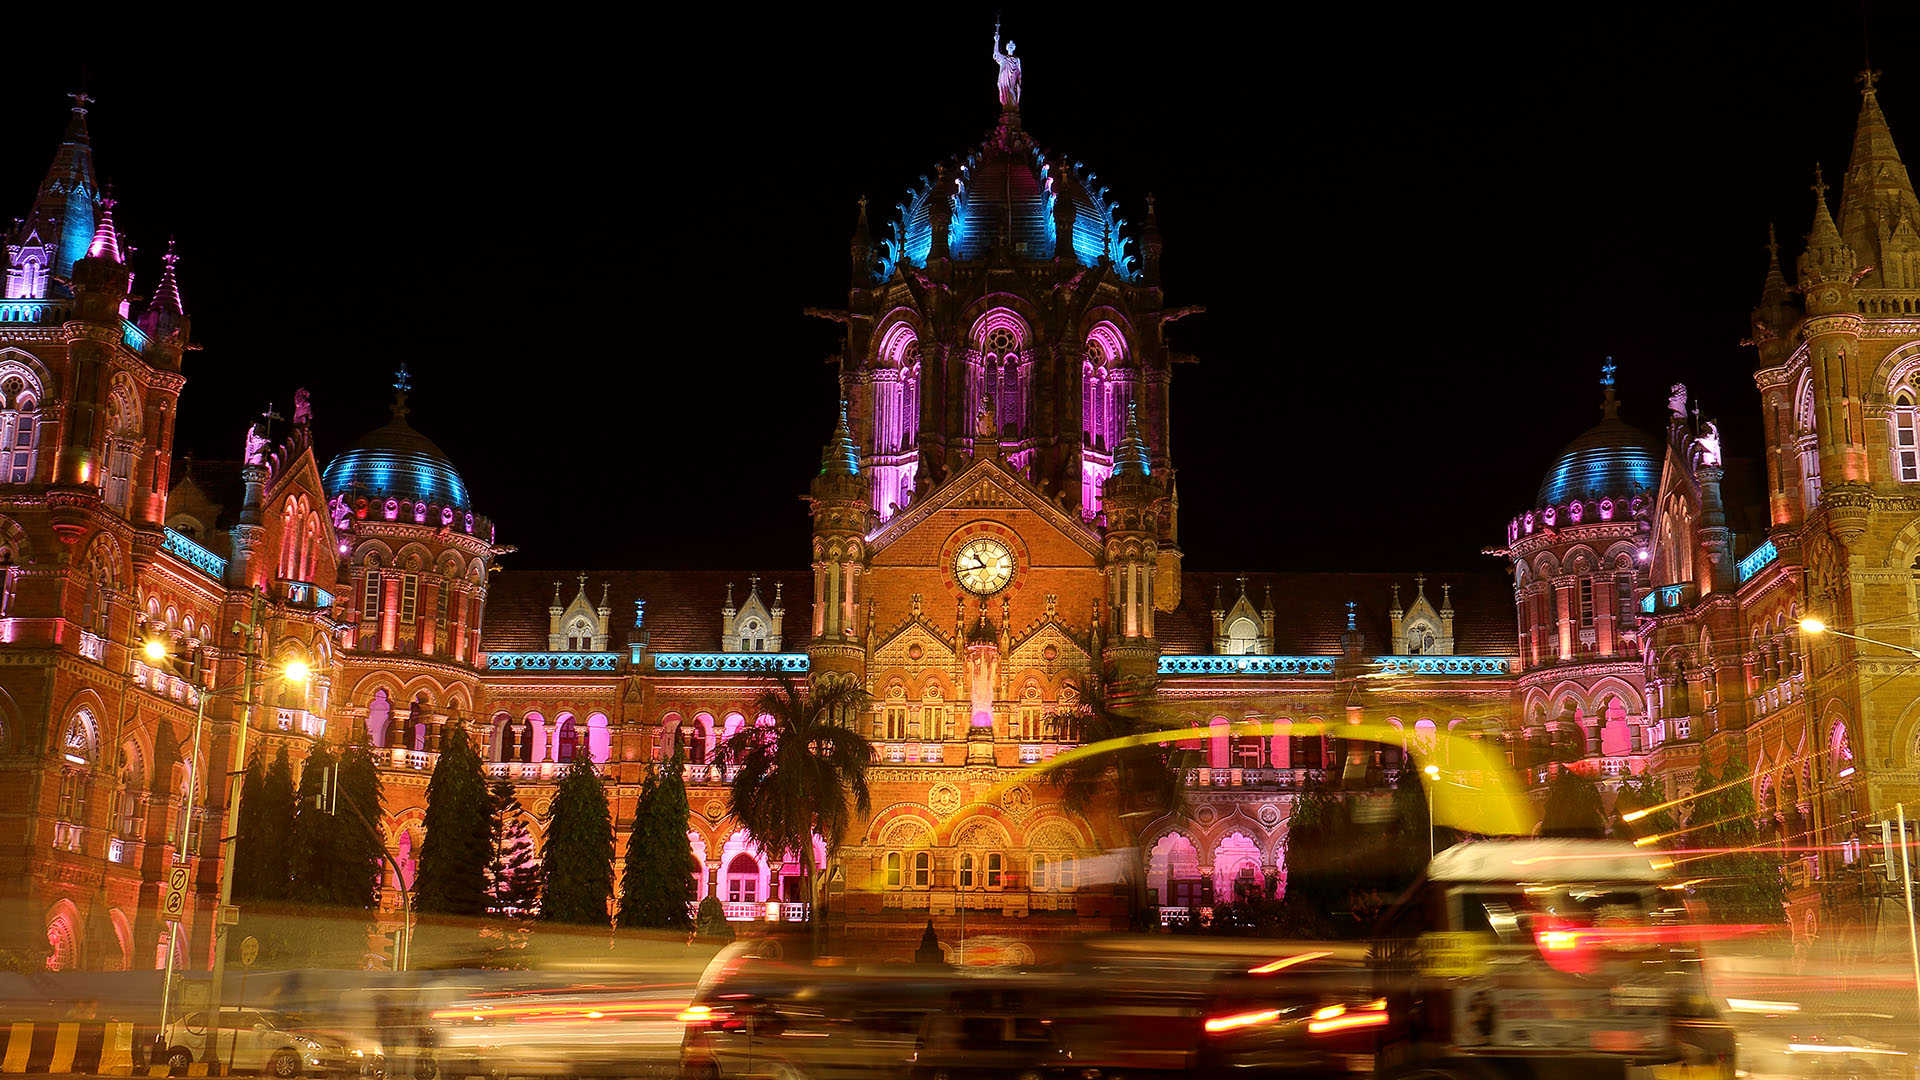 A brightly lit Chhatrapati Shivaji Railway Station popularly called as the Victoria Terminus is the perfect gateway to a million people who come to Mumbai everyday with dreams in their eyes and hope in their heart of a richer, better, busier, brighter... glitzier future.